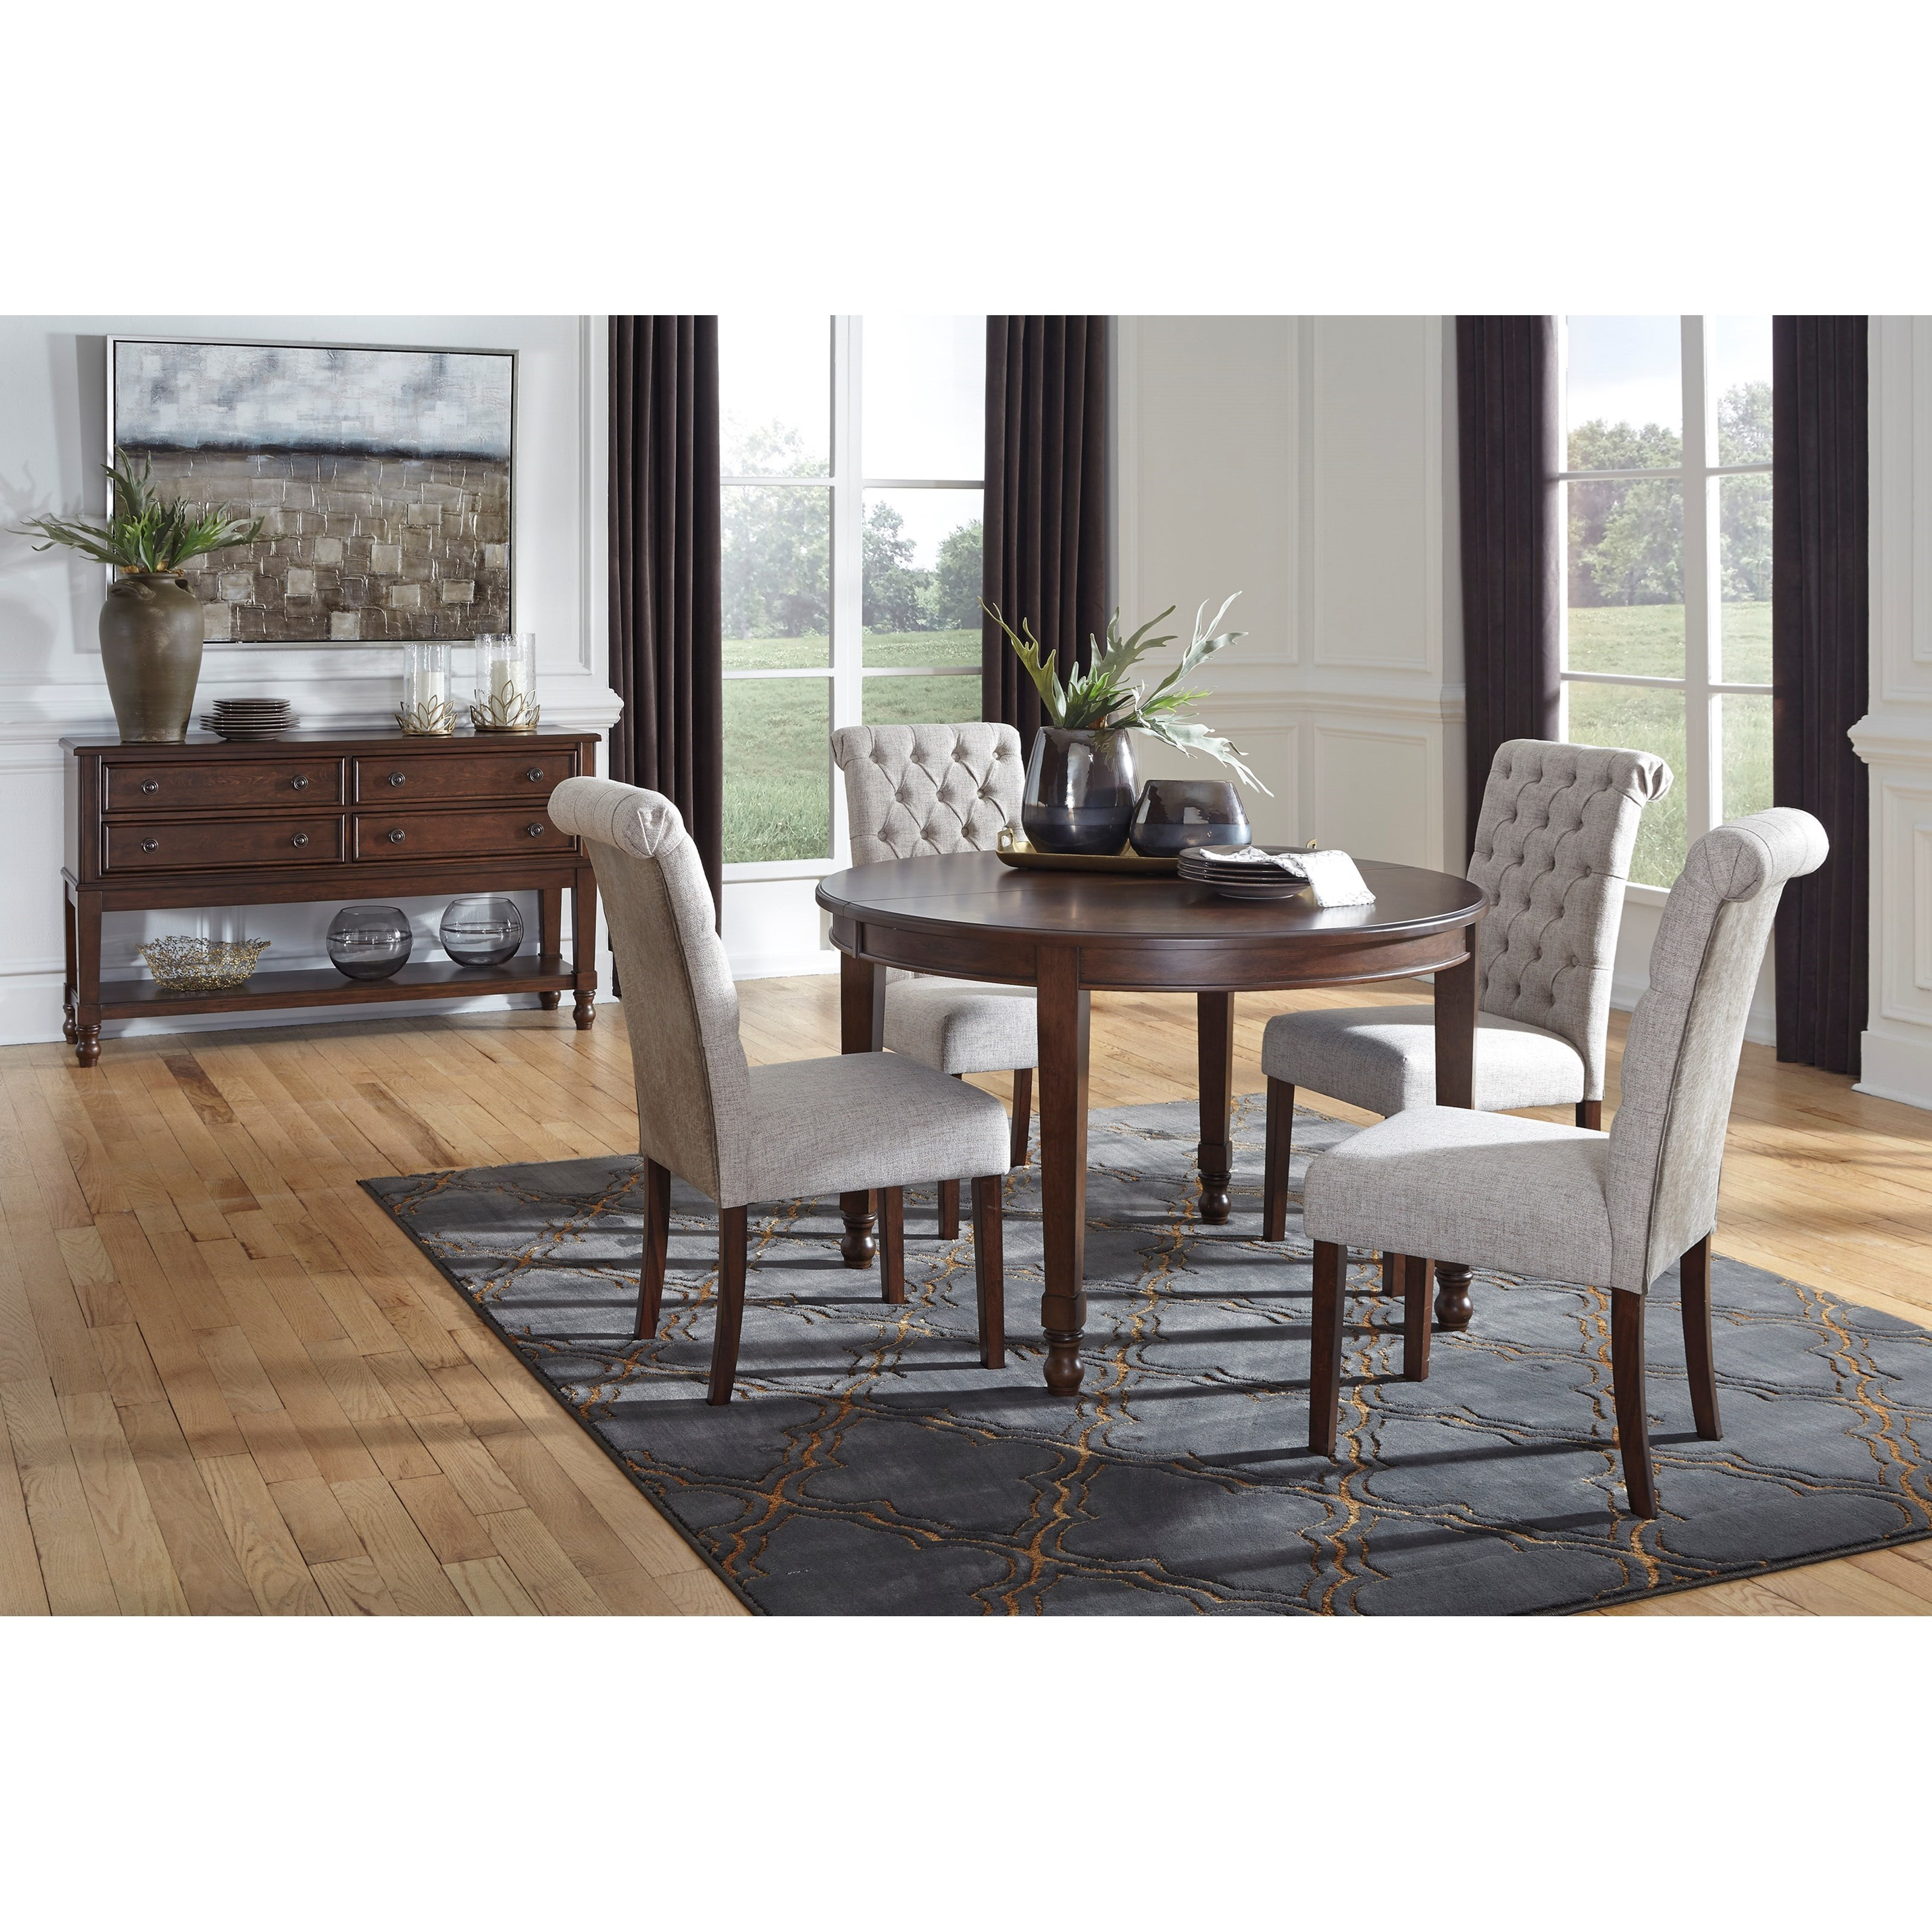 Adinton Casual Dining Room Group by Signature Design by Ashley at Houston's Yuma Furniture